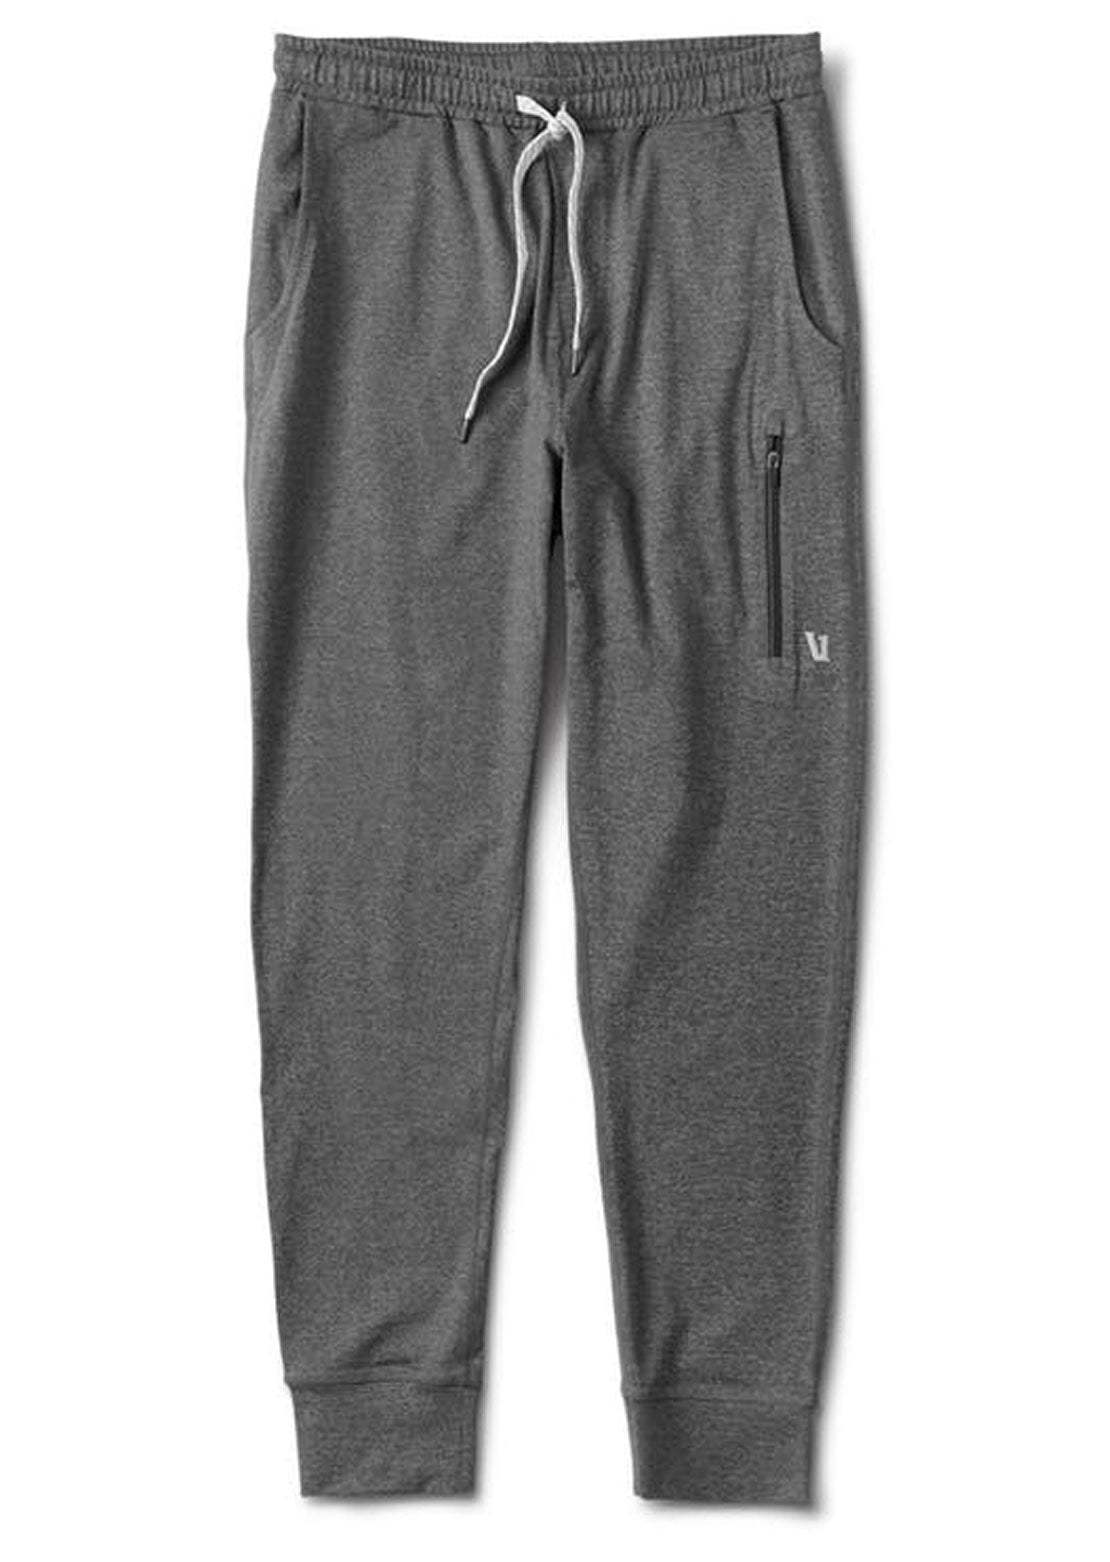 Vuori Men's Sunday Performance Joggers Charcoal Heather